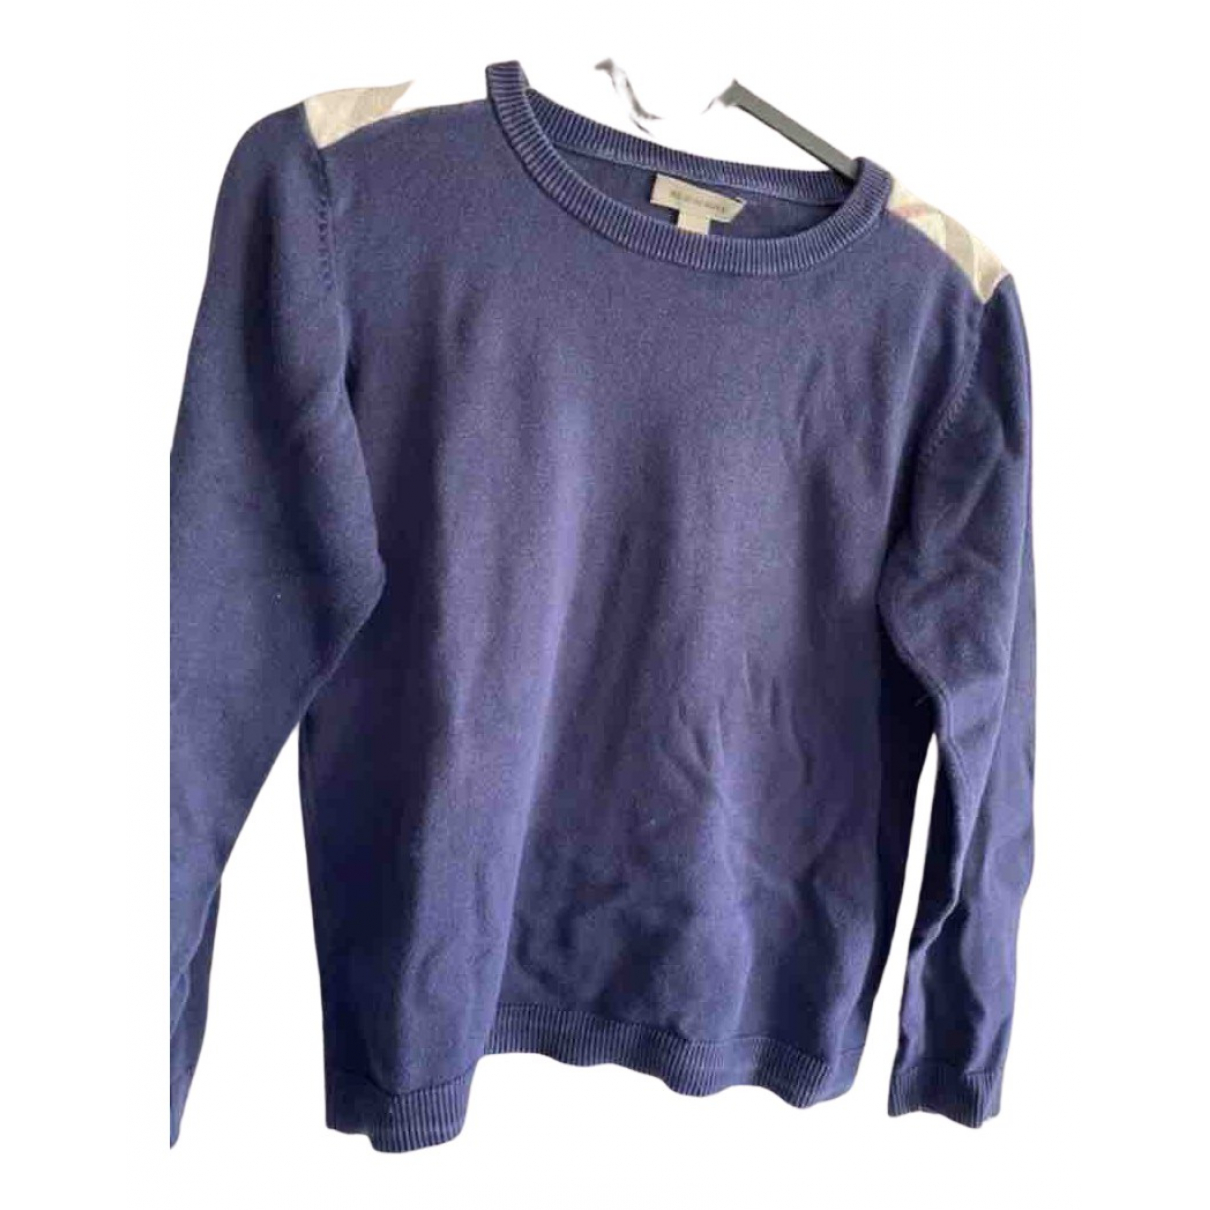 Burberry N Navy Cotton Knitwear for Kids 10 years - up to 142cm FR